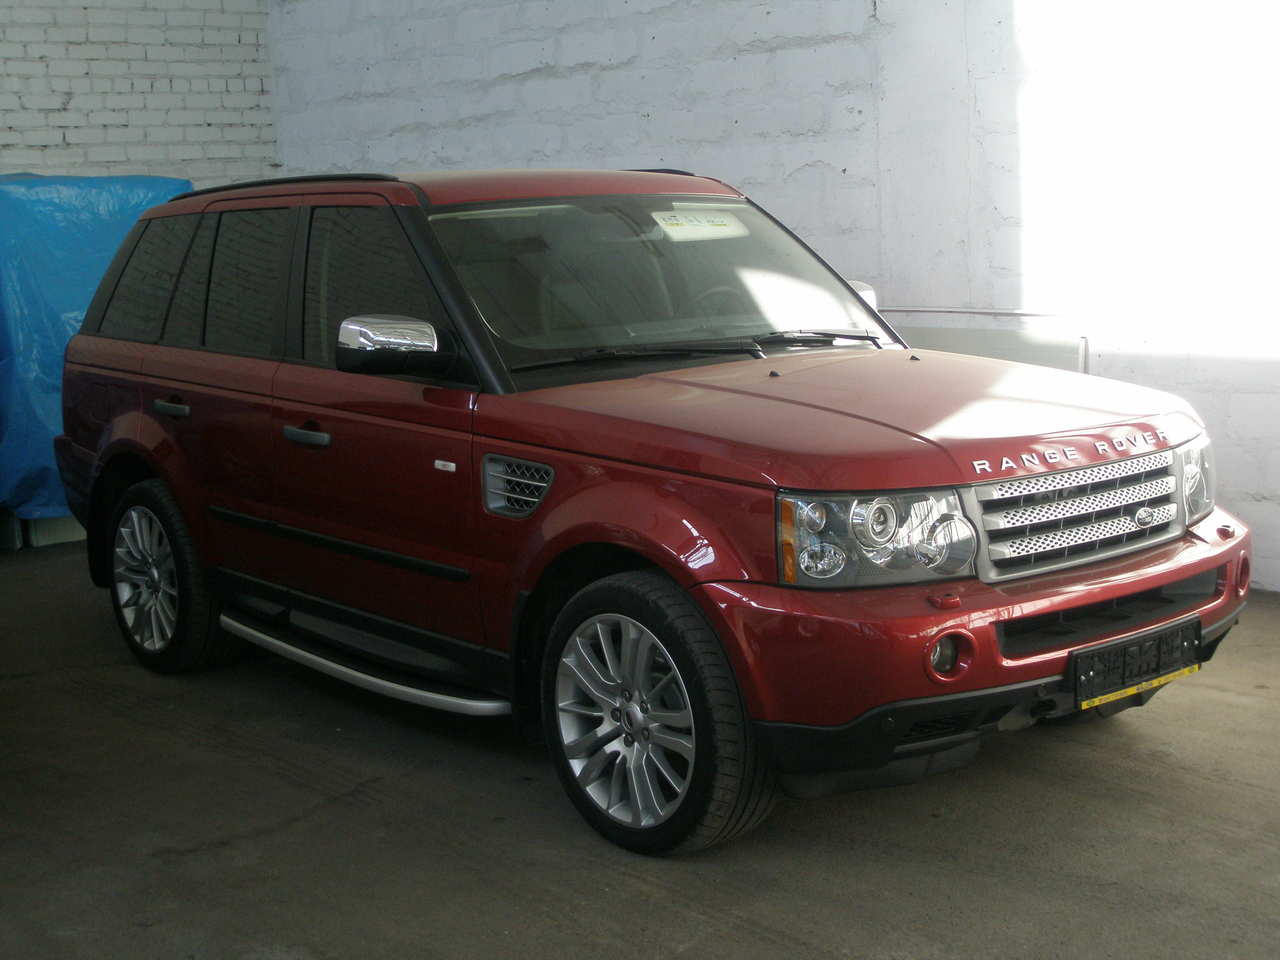 Used 2009 Land Rover Range Rover Sport Photos 4200cc Gasoline Cvt For Sale